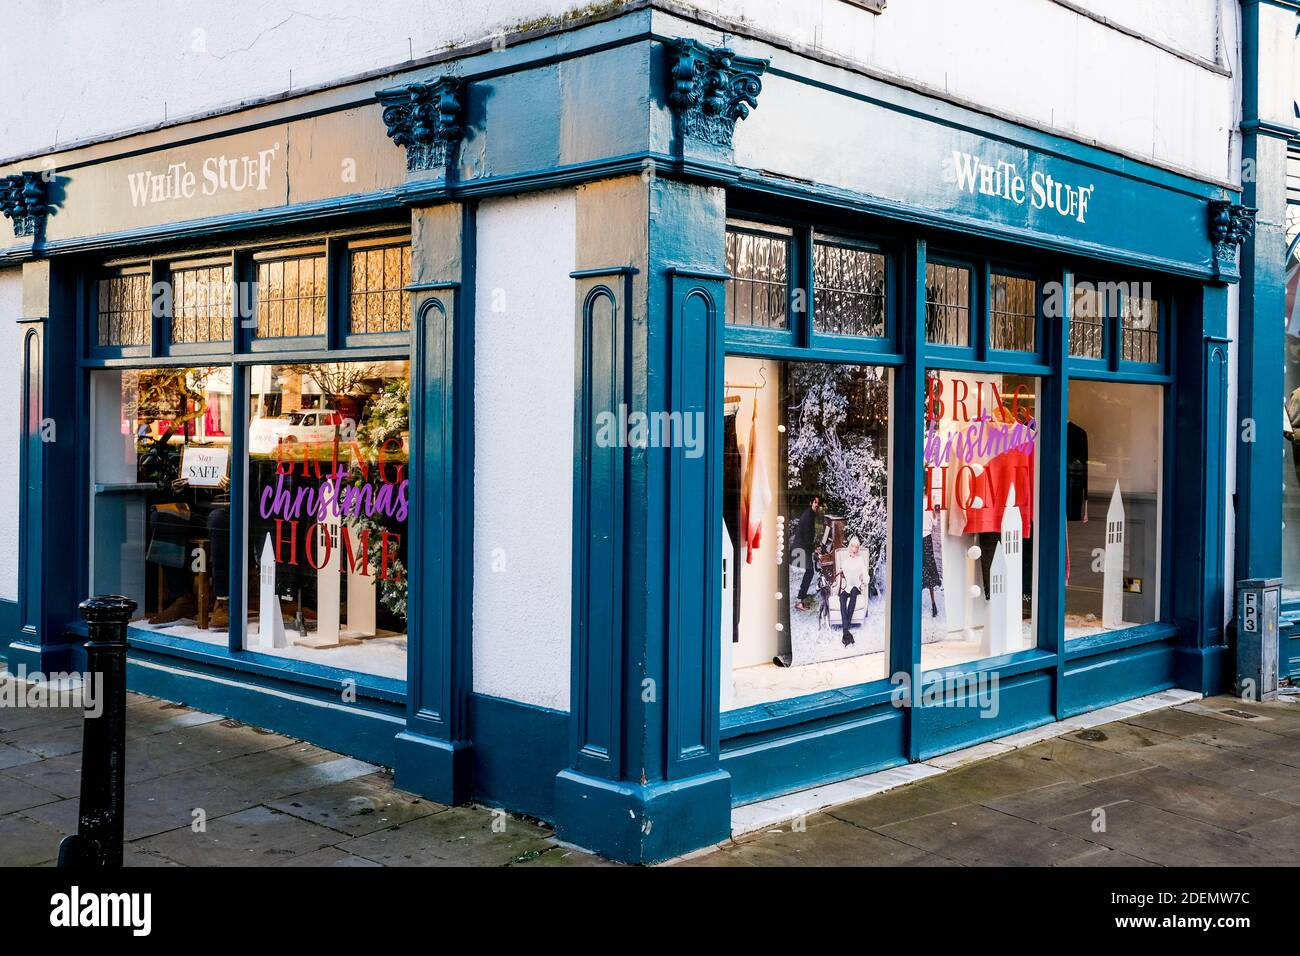 London UK, December 01 2020, White Stuff Fashion Clothing Retail Chain Shop Window With No People, Closed During COVID-19 Lockdown Stock Photo